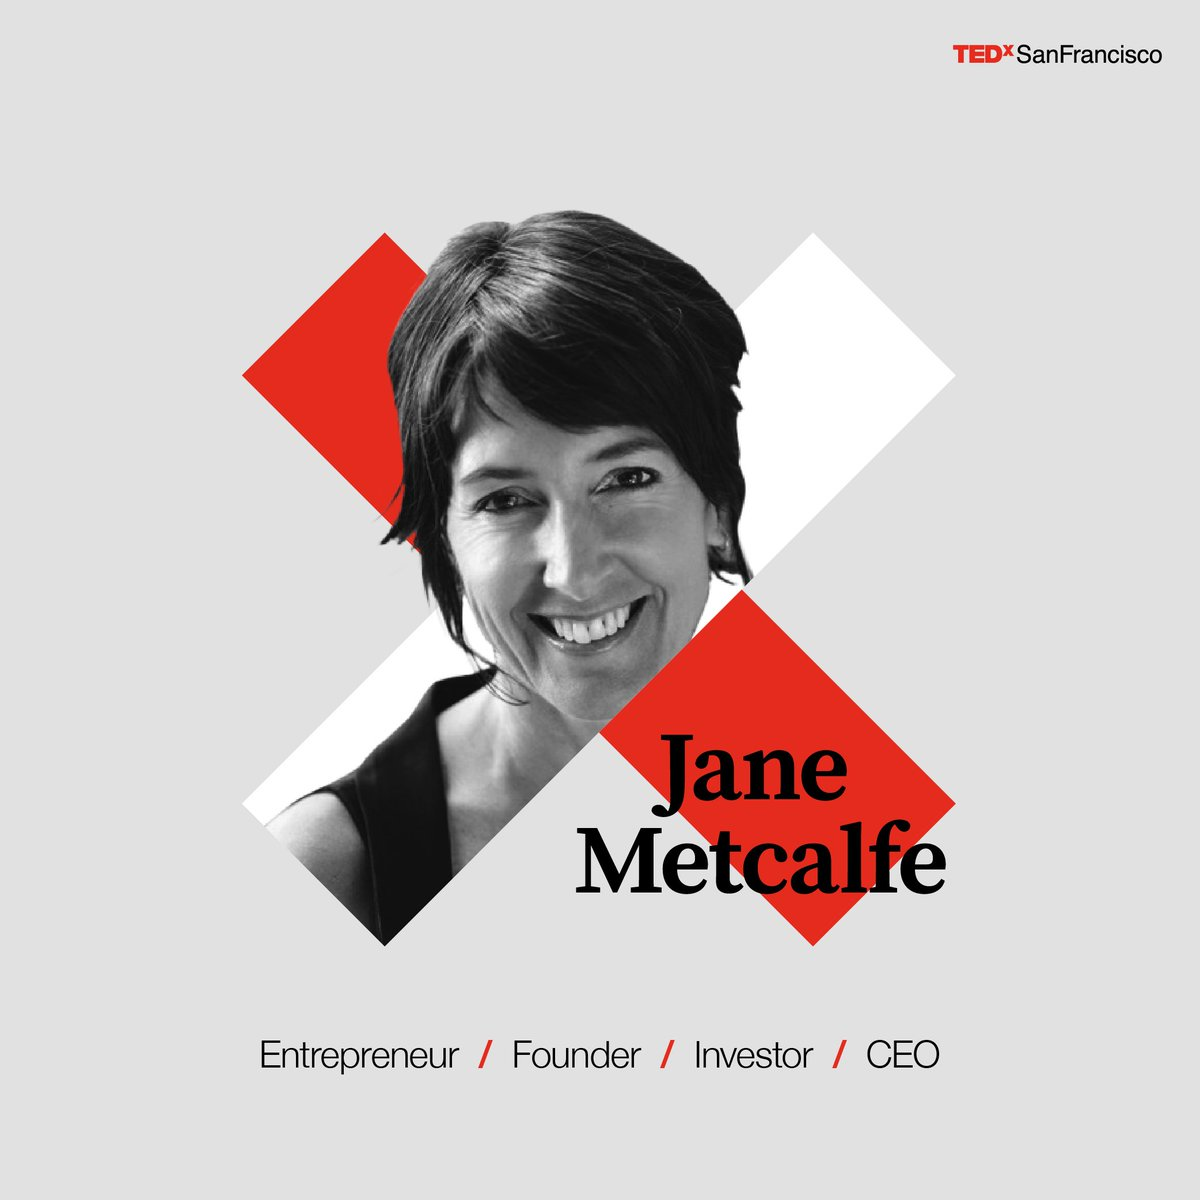 #DareToKnow if #biology &amp; #technology are conspiring to help us live healthier lives with @janemetcalfe on 10.10 at  http://www. tedxsanfrancisco.com  &nbsp;  <br>http://pic.twitter.com/eFAVzO3qPJ